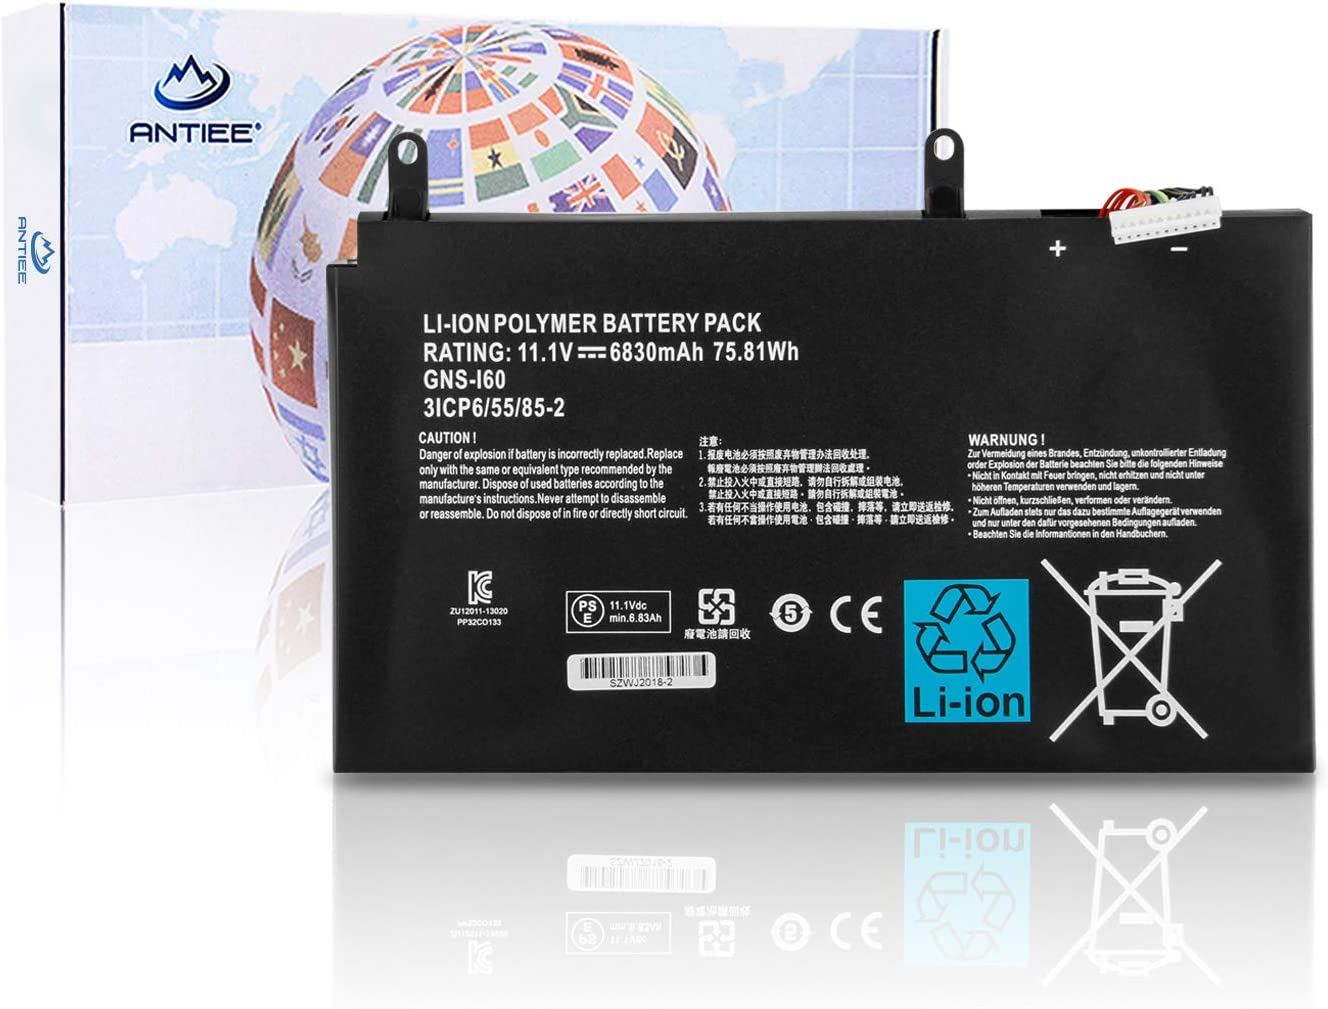 ANTIEE GNS-160 GNS-I60 Laptop Battery Replacement for GIGABYTE P35G v2 P35K P35N P35W P35X v3 v7 P37K P37W P37X v5 P57W v7 P57X v6 v7 Series 961TA010FA 11.1V 75.81Wh 6830mAh 6-Cell